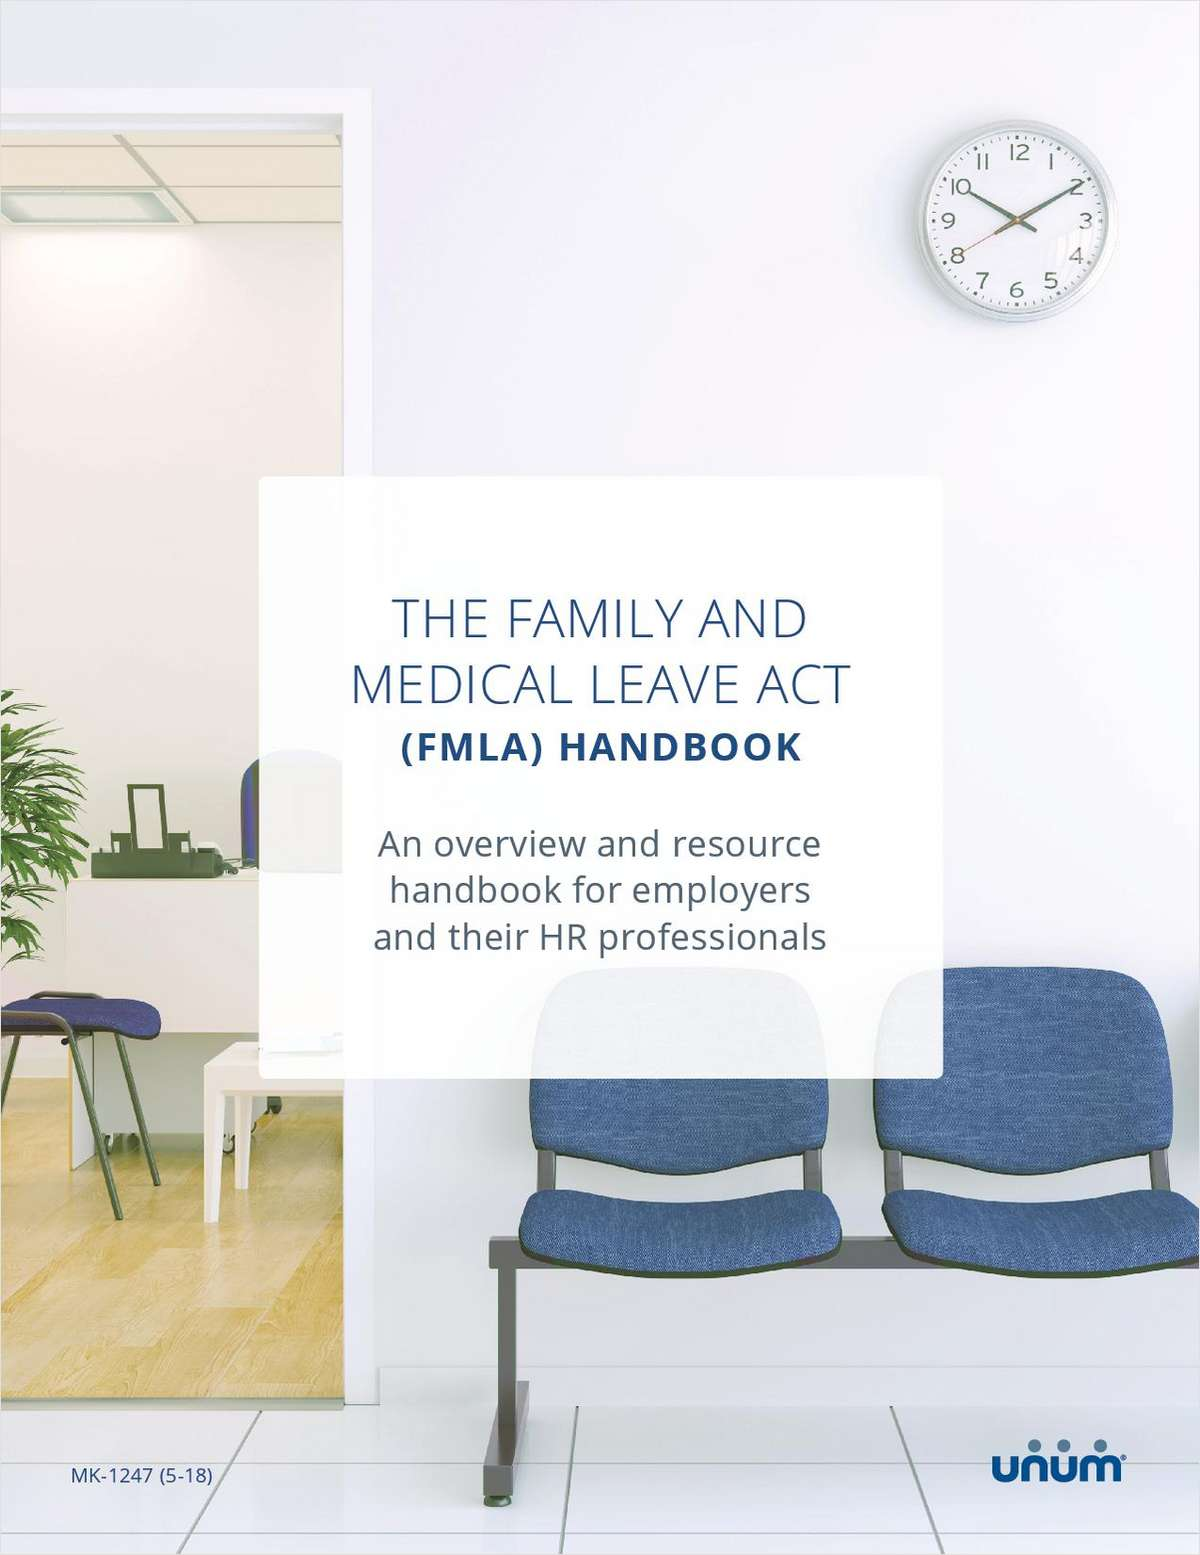 Tool: The Family and Medical Leave Act (FMLA) Handbook